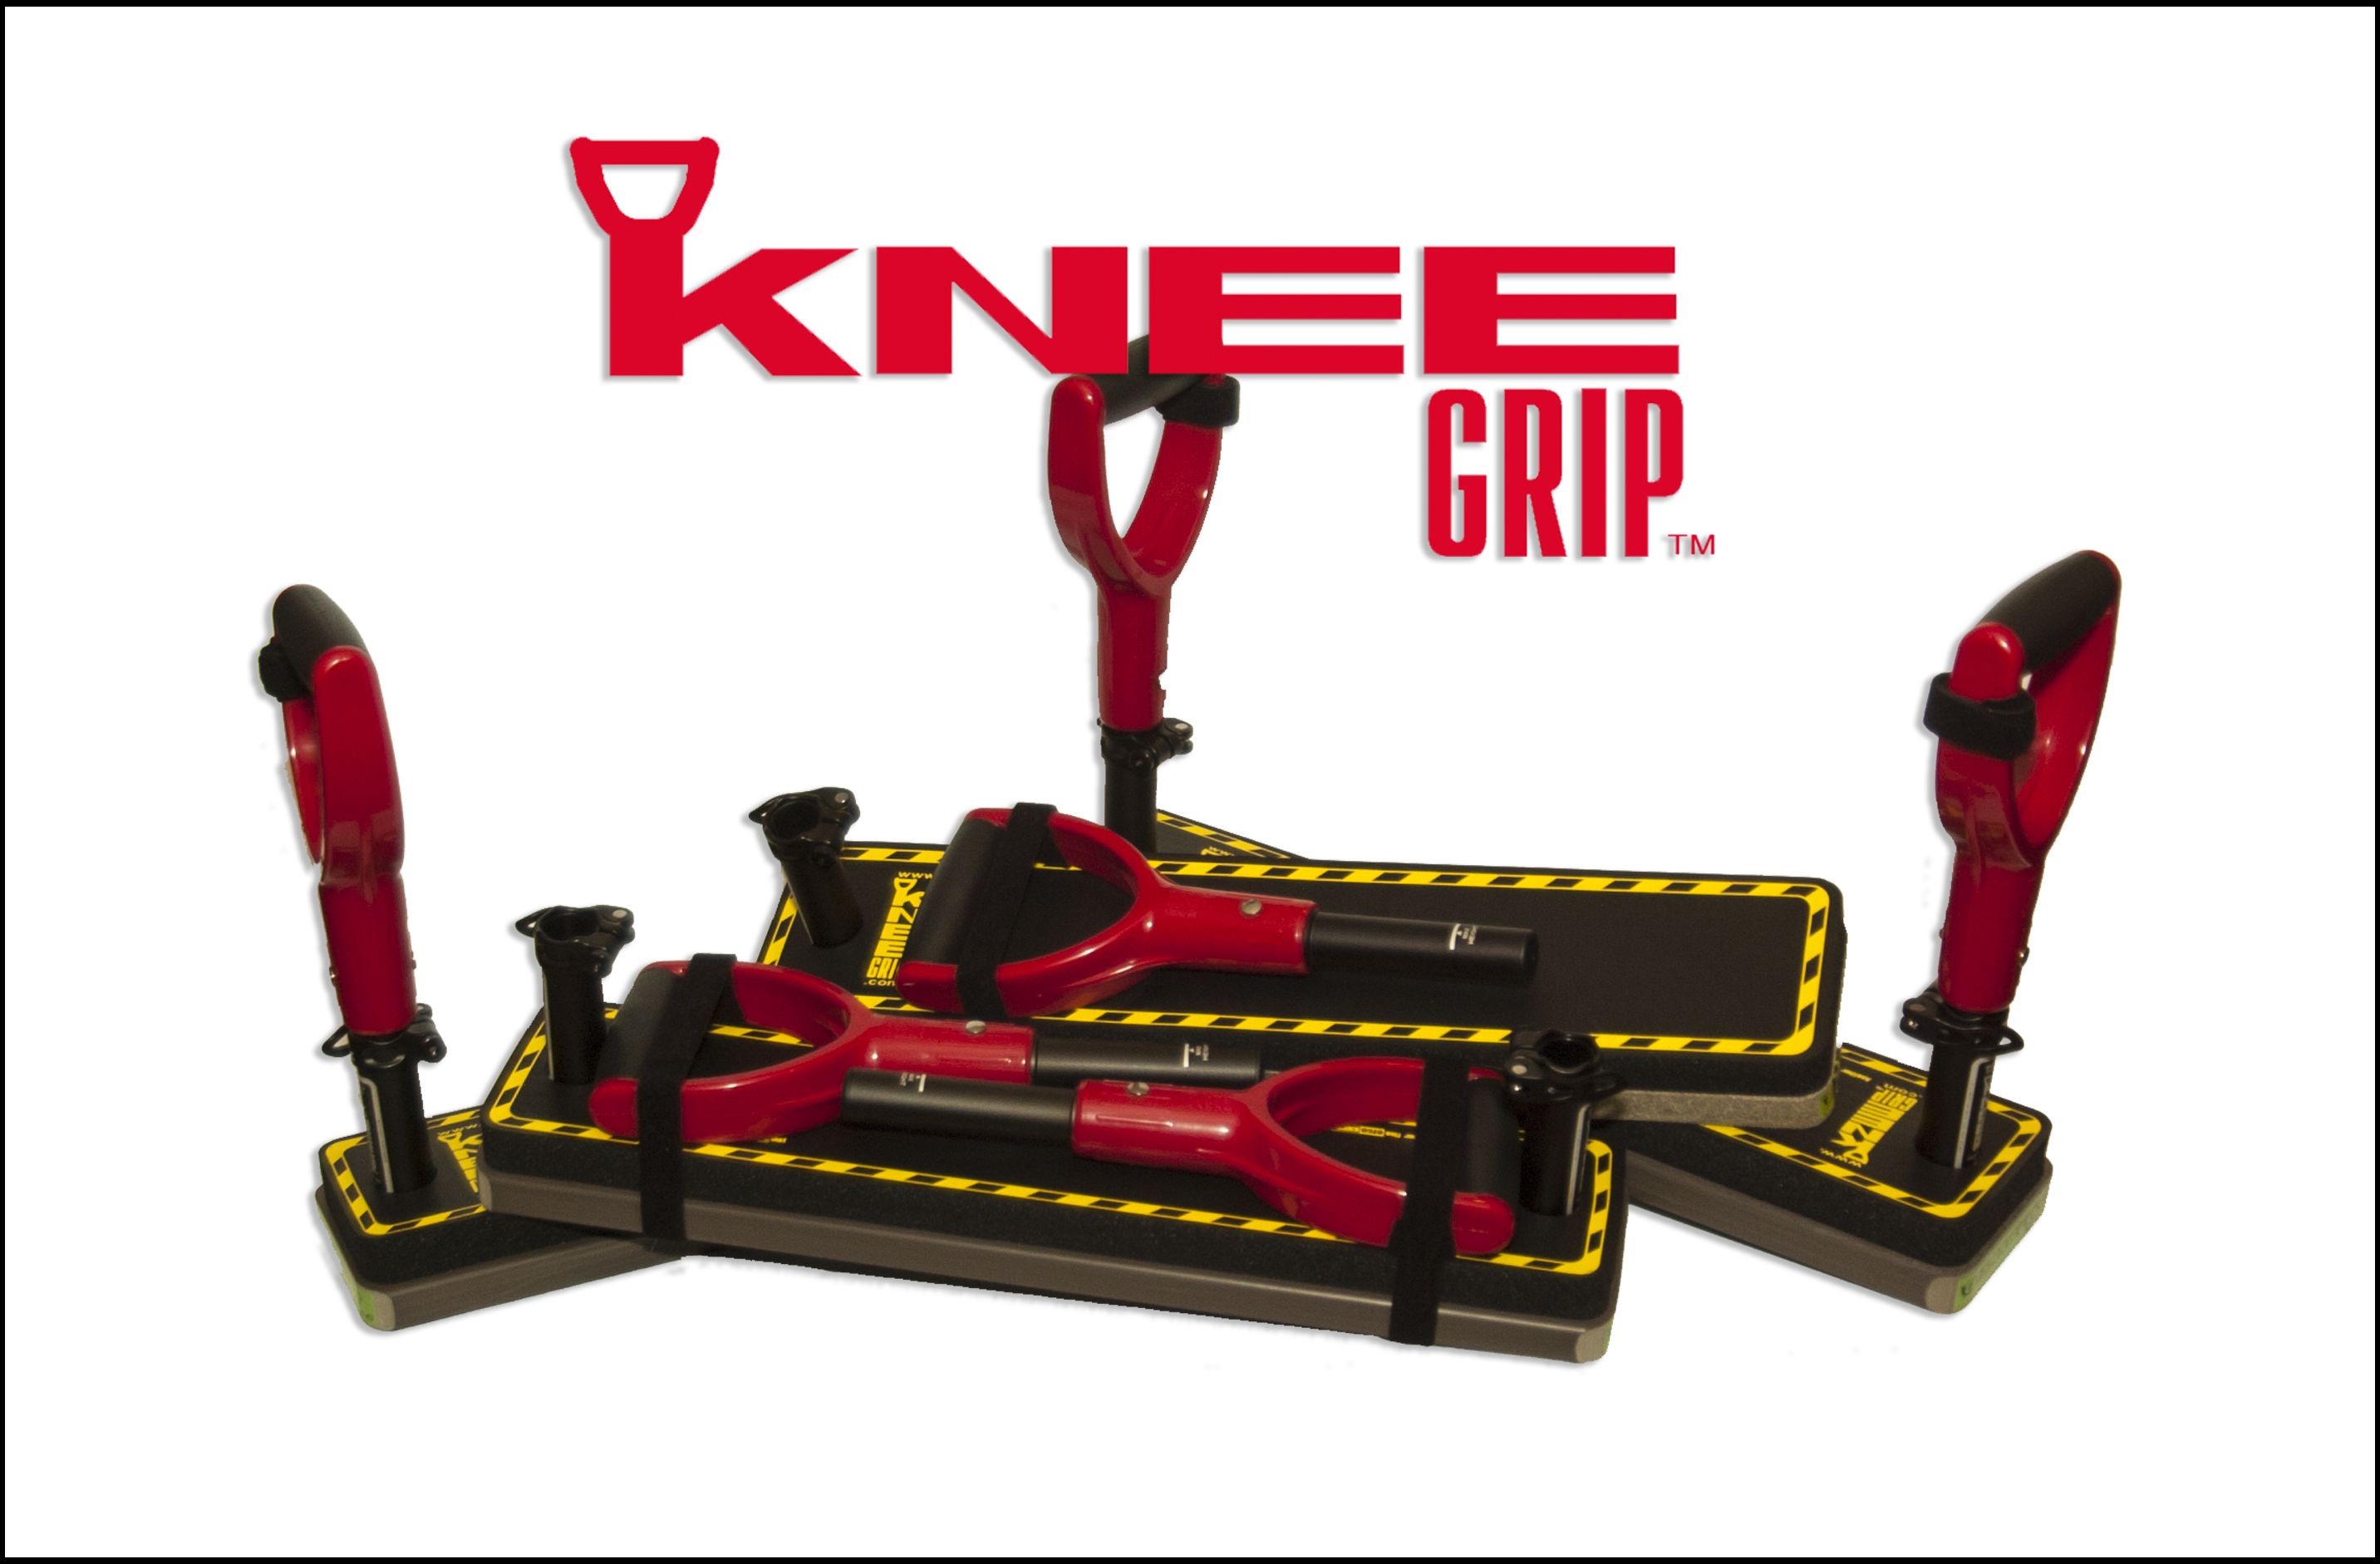 Kneegrip Offers A Powerful One Of A Kind Solution To Sore